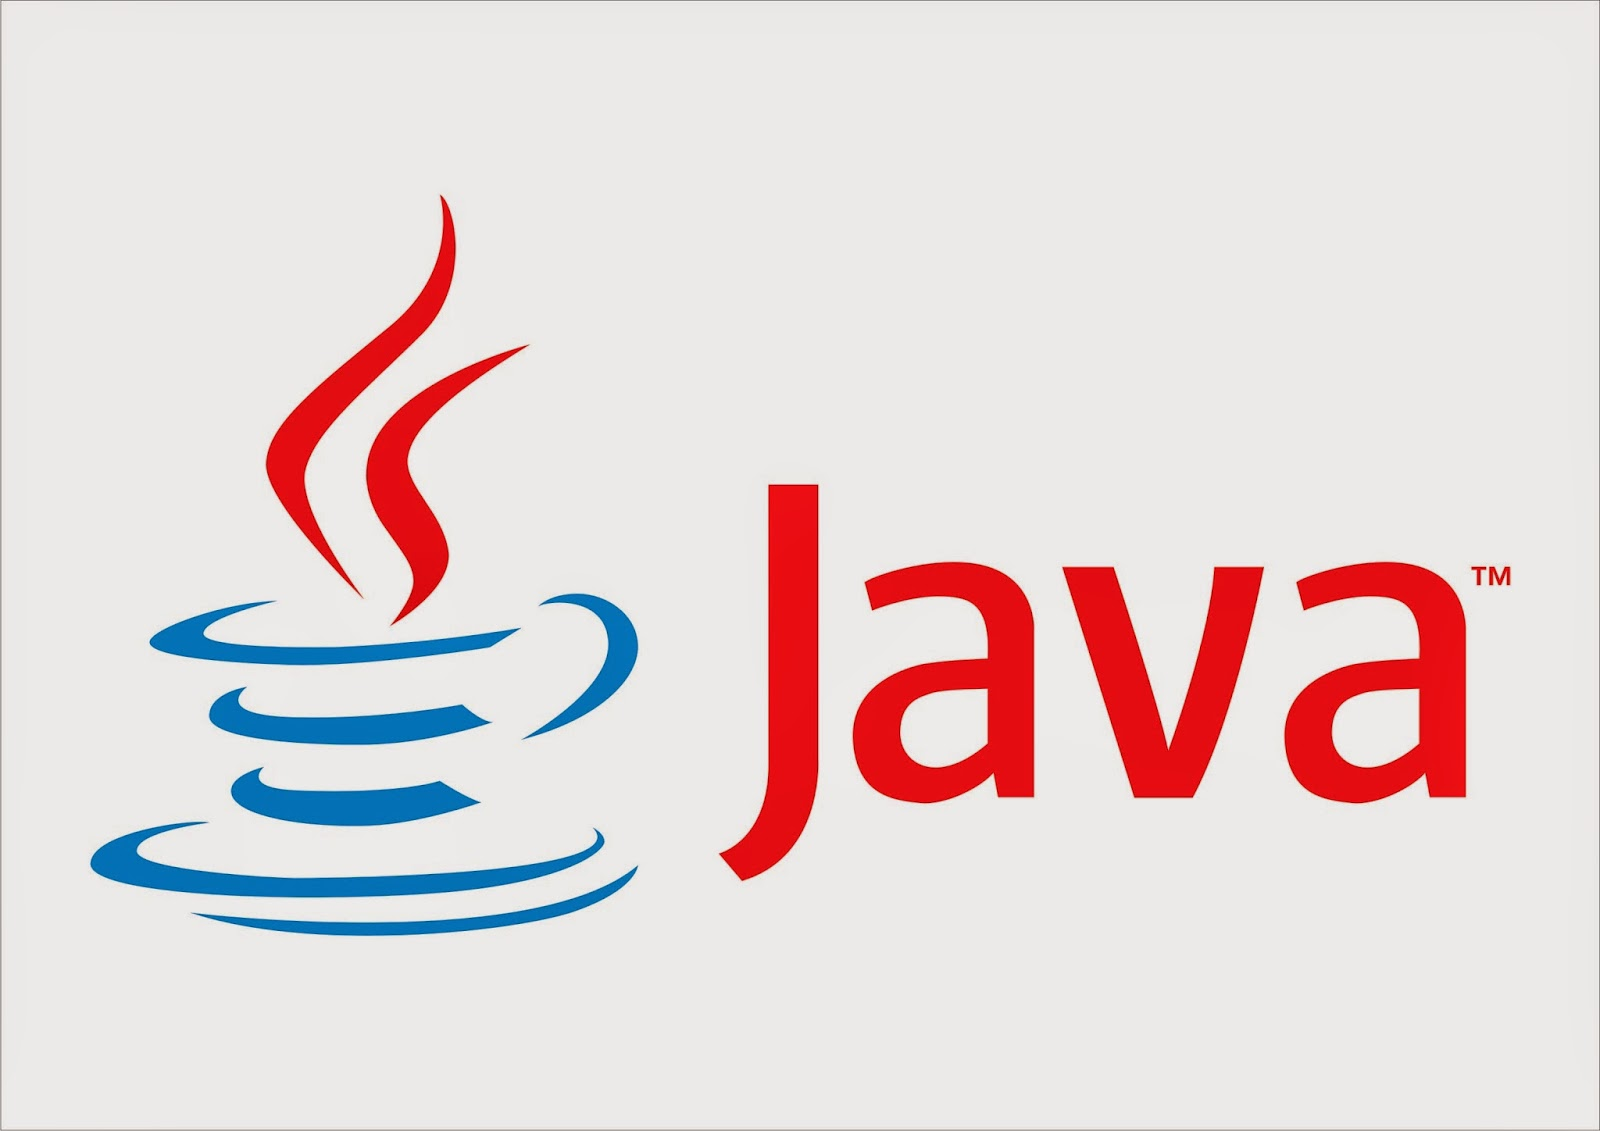 Java tutorial point javatpoint java core java tutorialspoint java tutorial point javatpoint java core java tutorialspoint java programming 1 introduction to java baditri Images